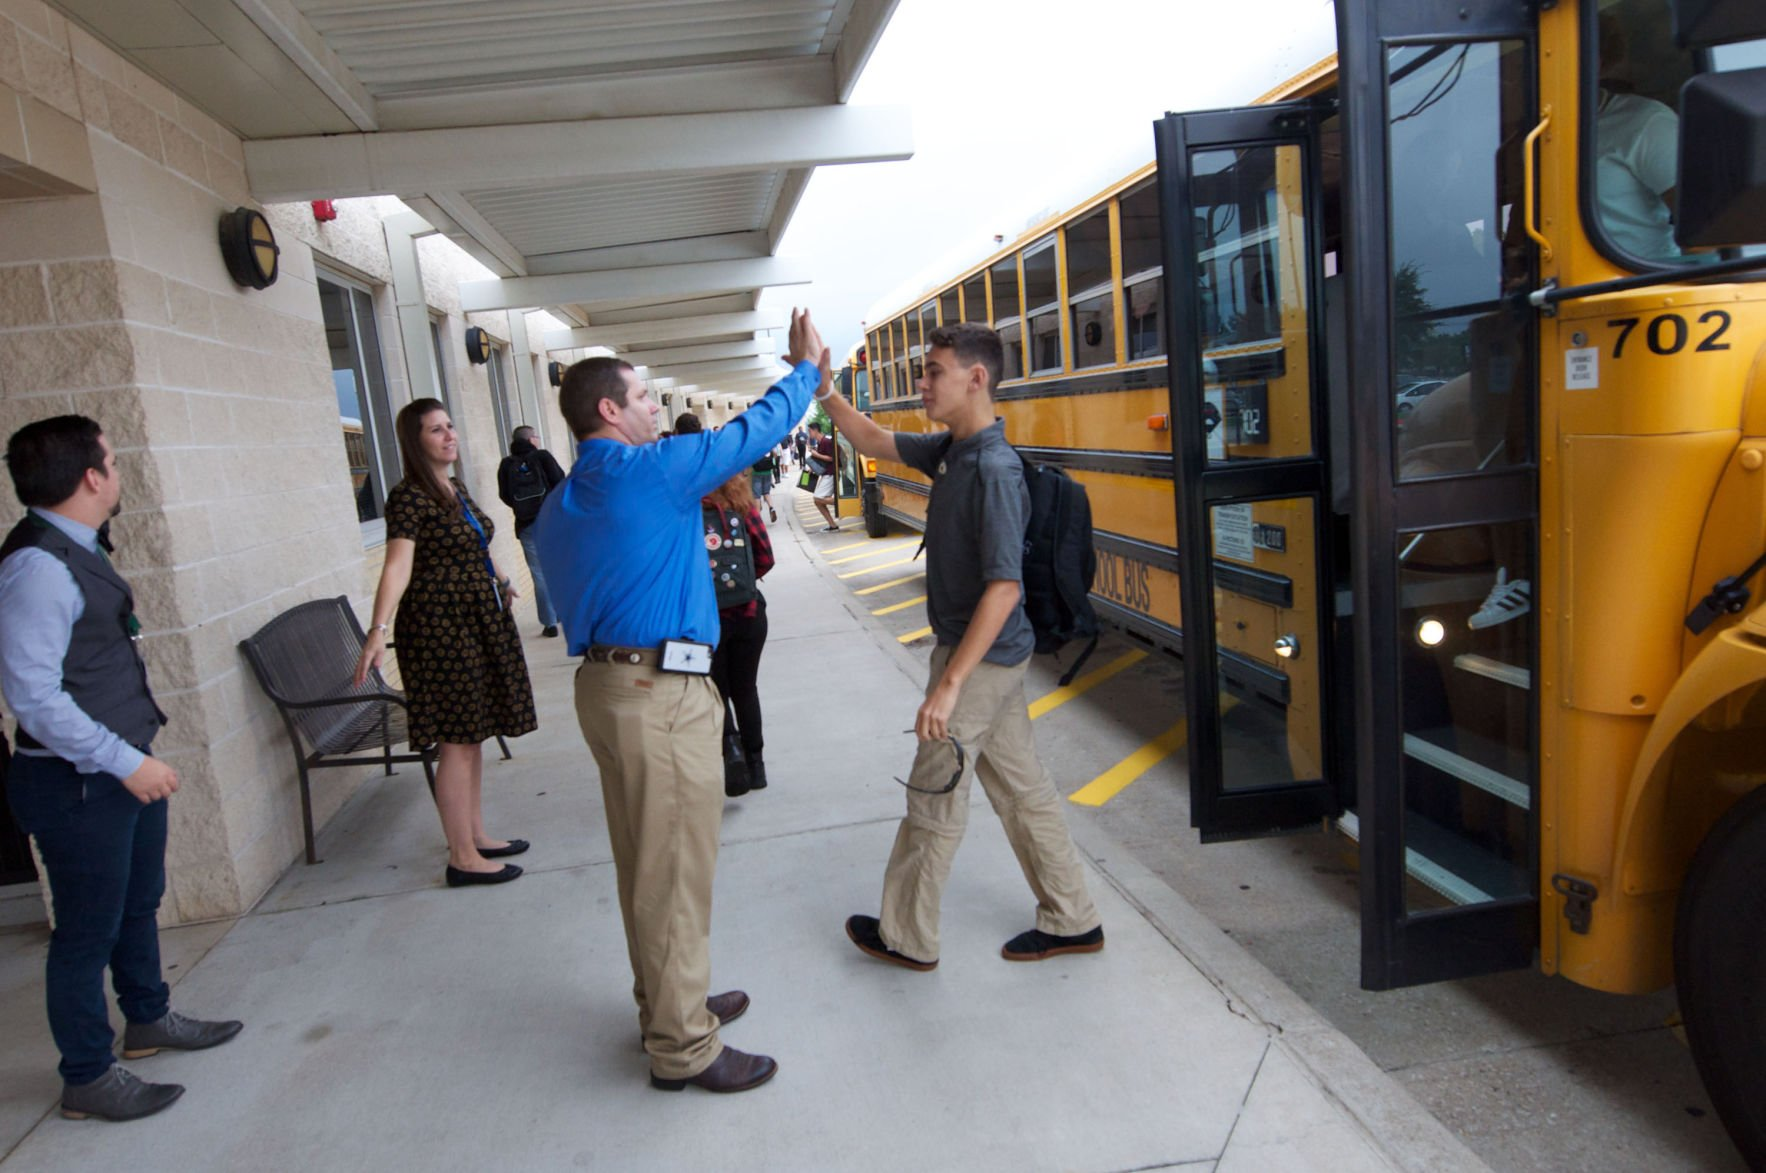 Middle School Principal Chad Wolf greets students